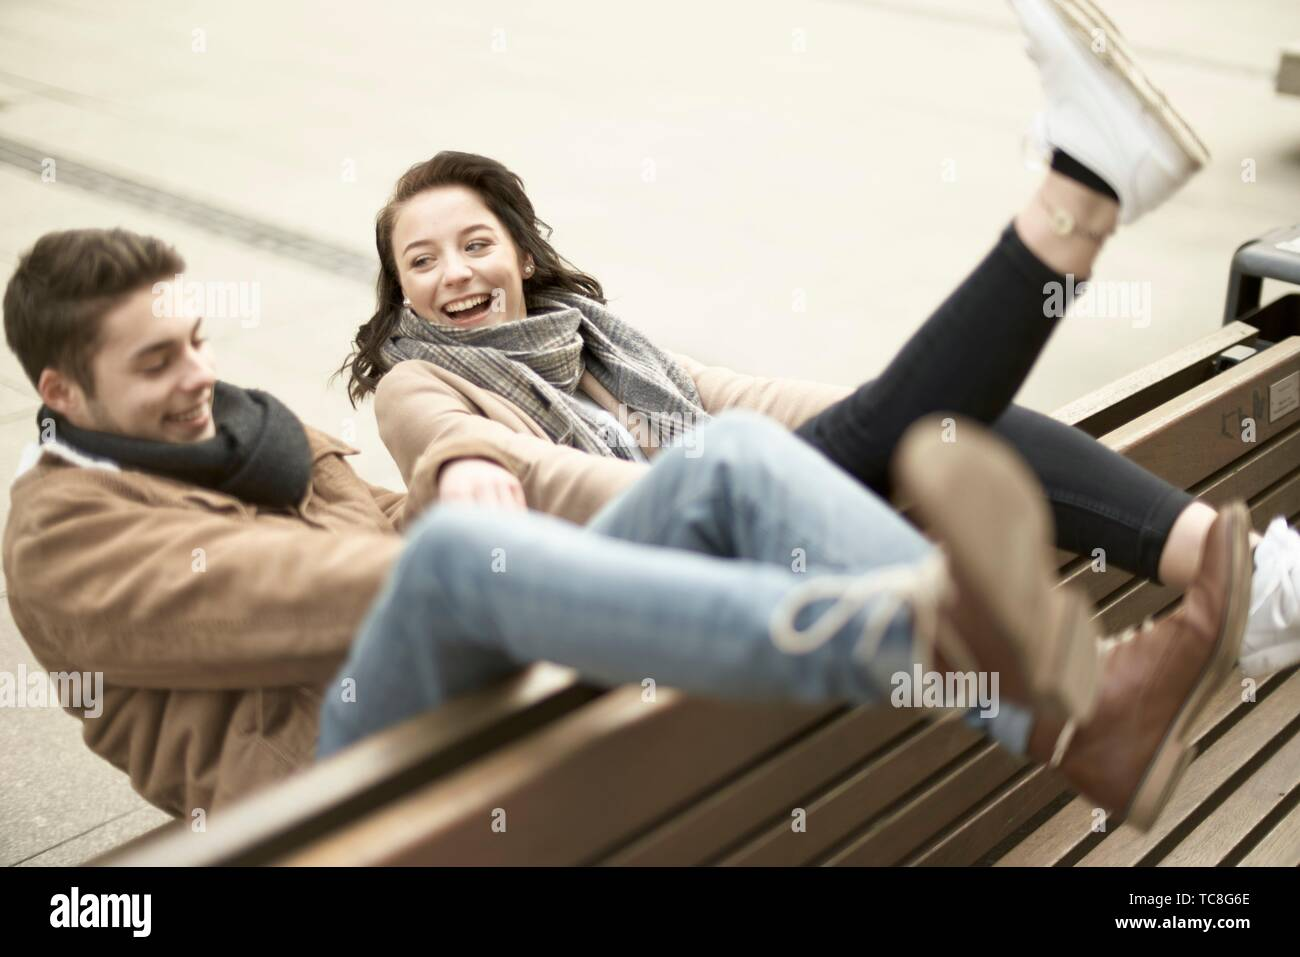 young lively teenage couple sitting on bench the wrong way round in city, hanging out together, legs up, upside down, in Cottbus, Brandenburg, Germany Stock Photo